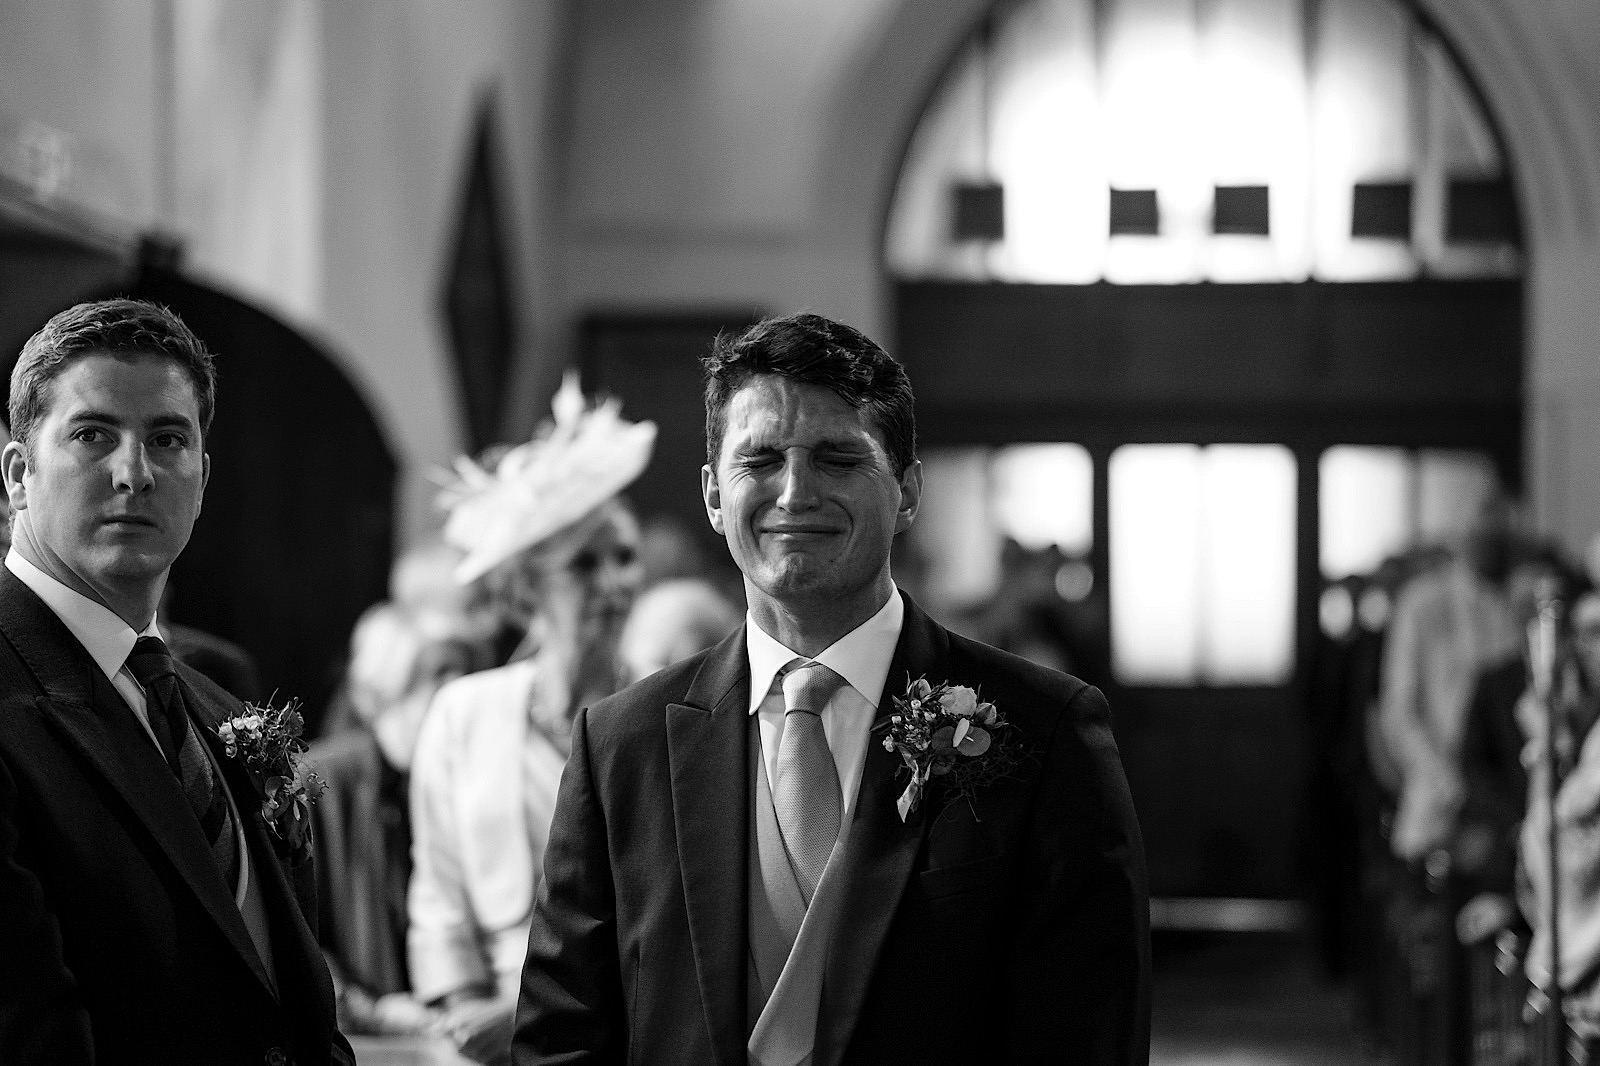 Emotional Groom at a wedding waiting for the bride to walk down the aisle